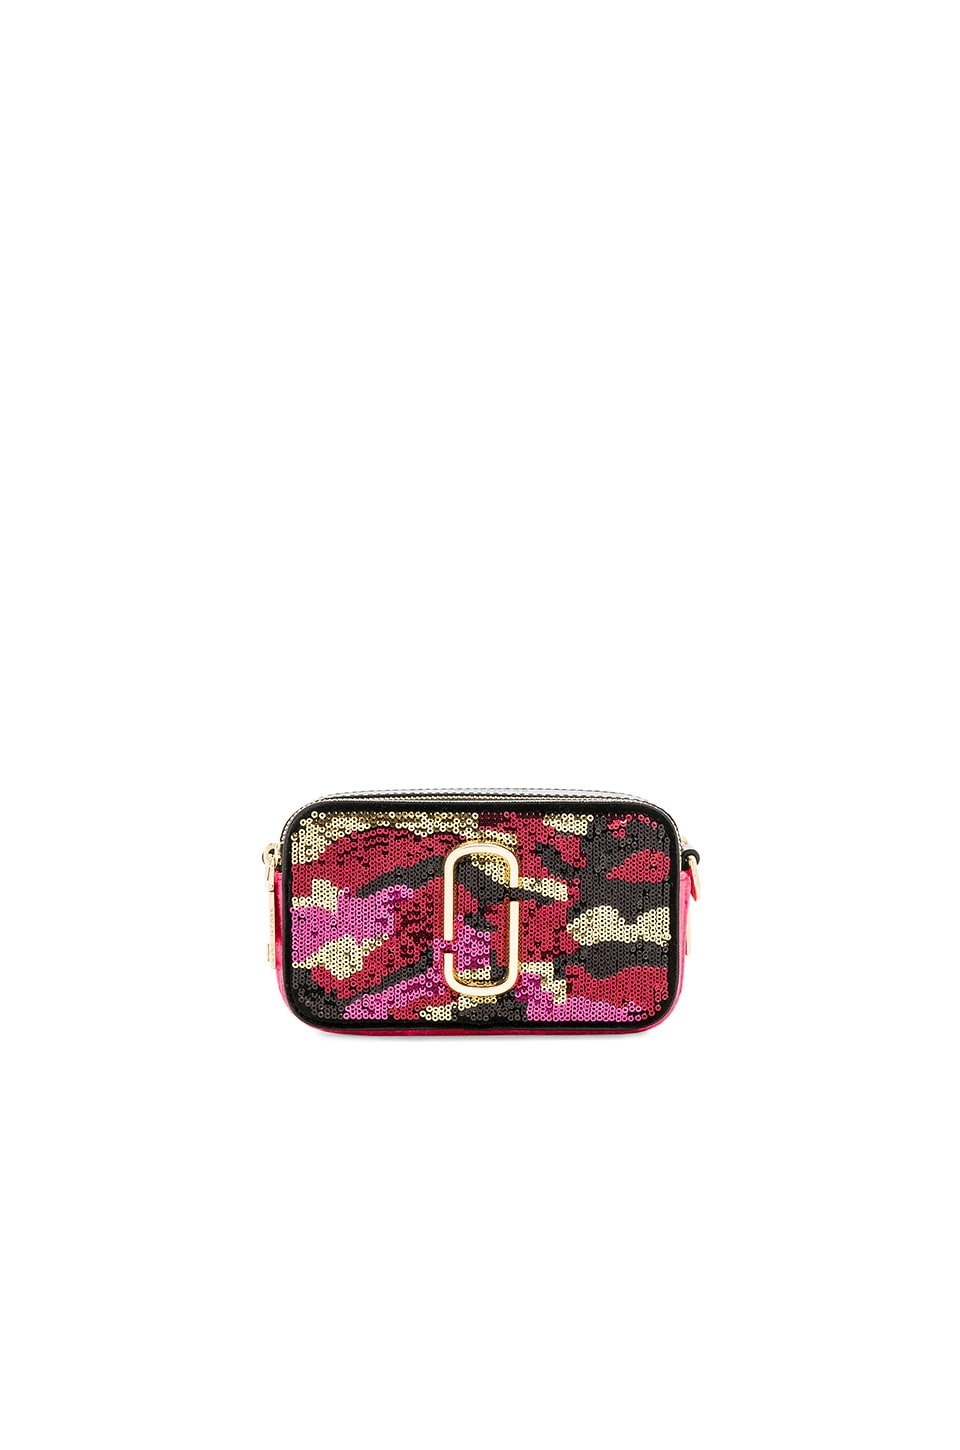 Camo Sequin Snapshot Camera Bag